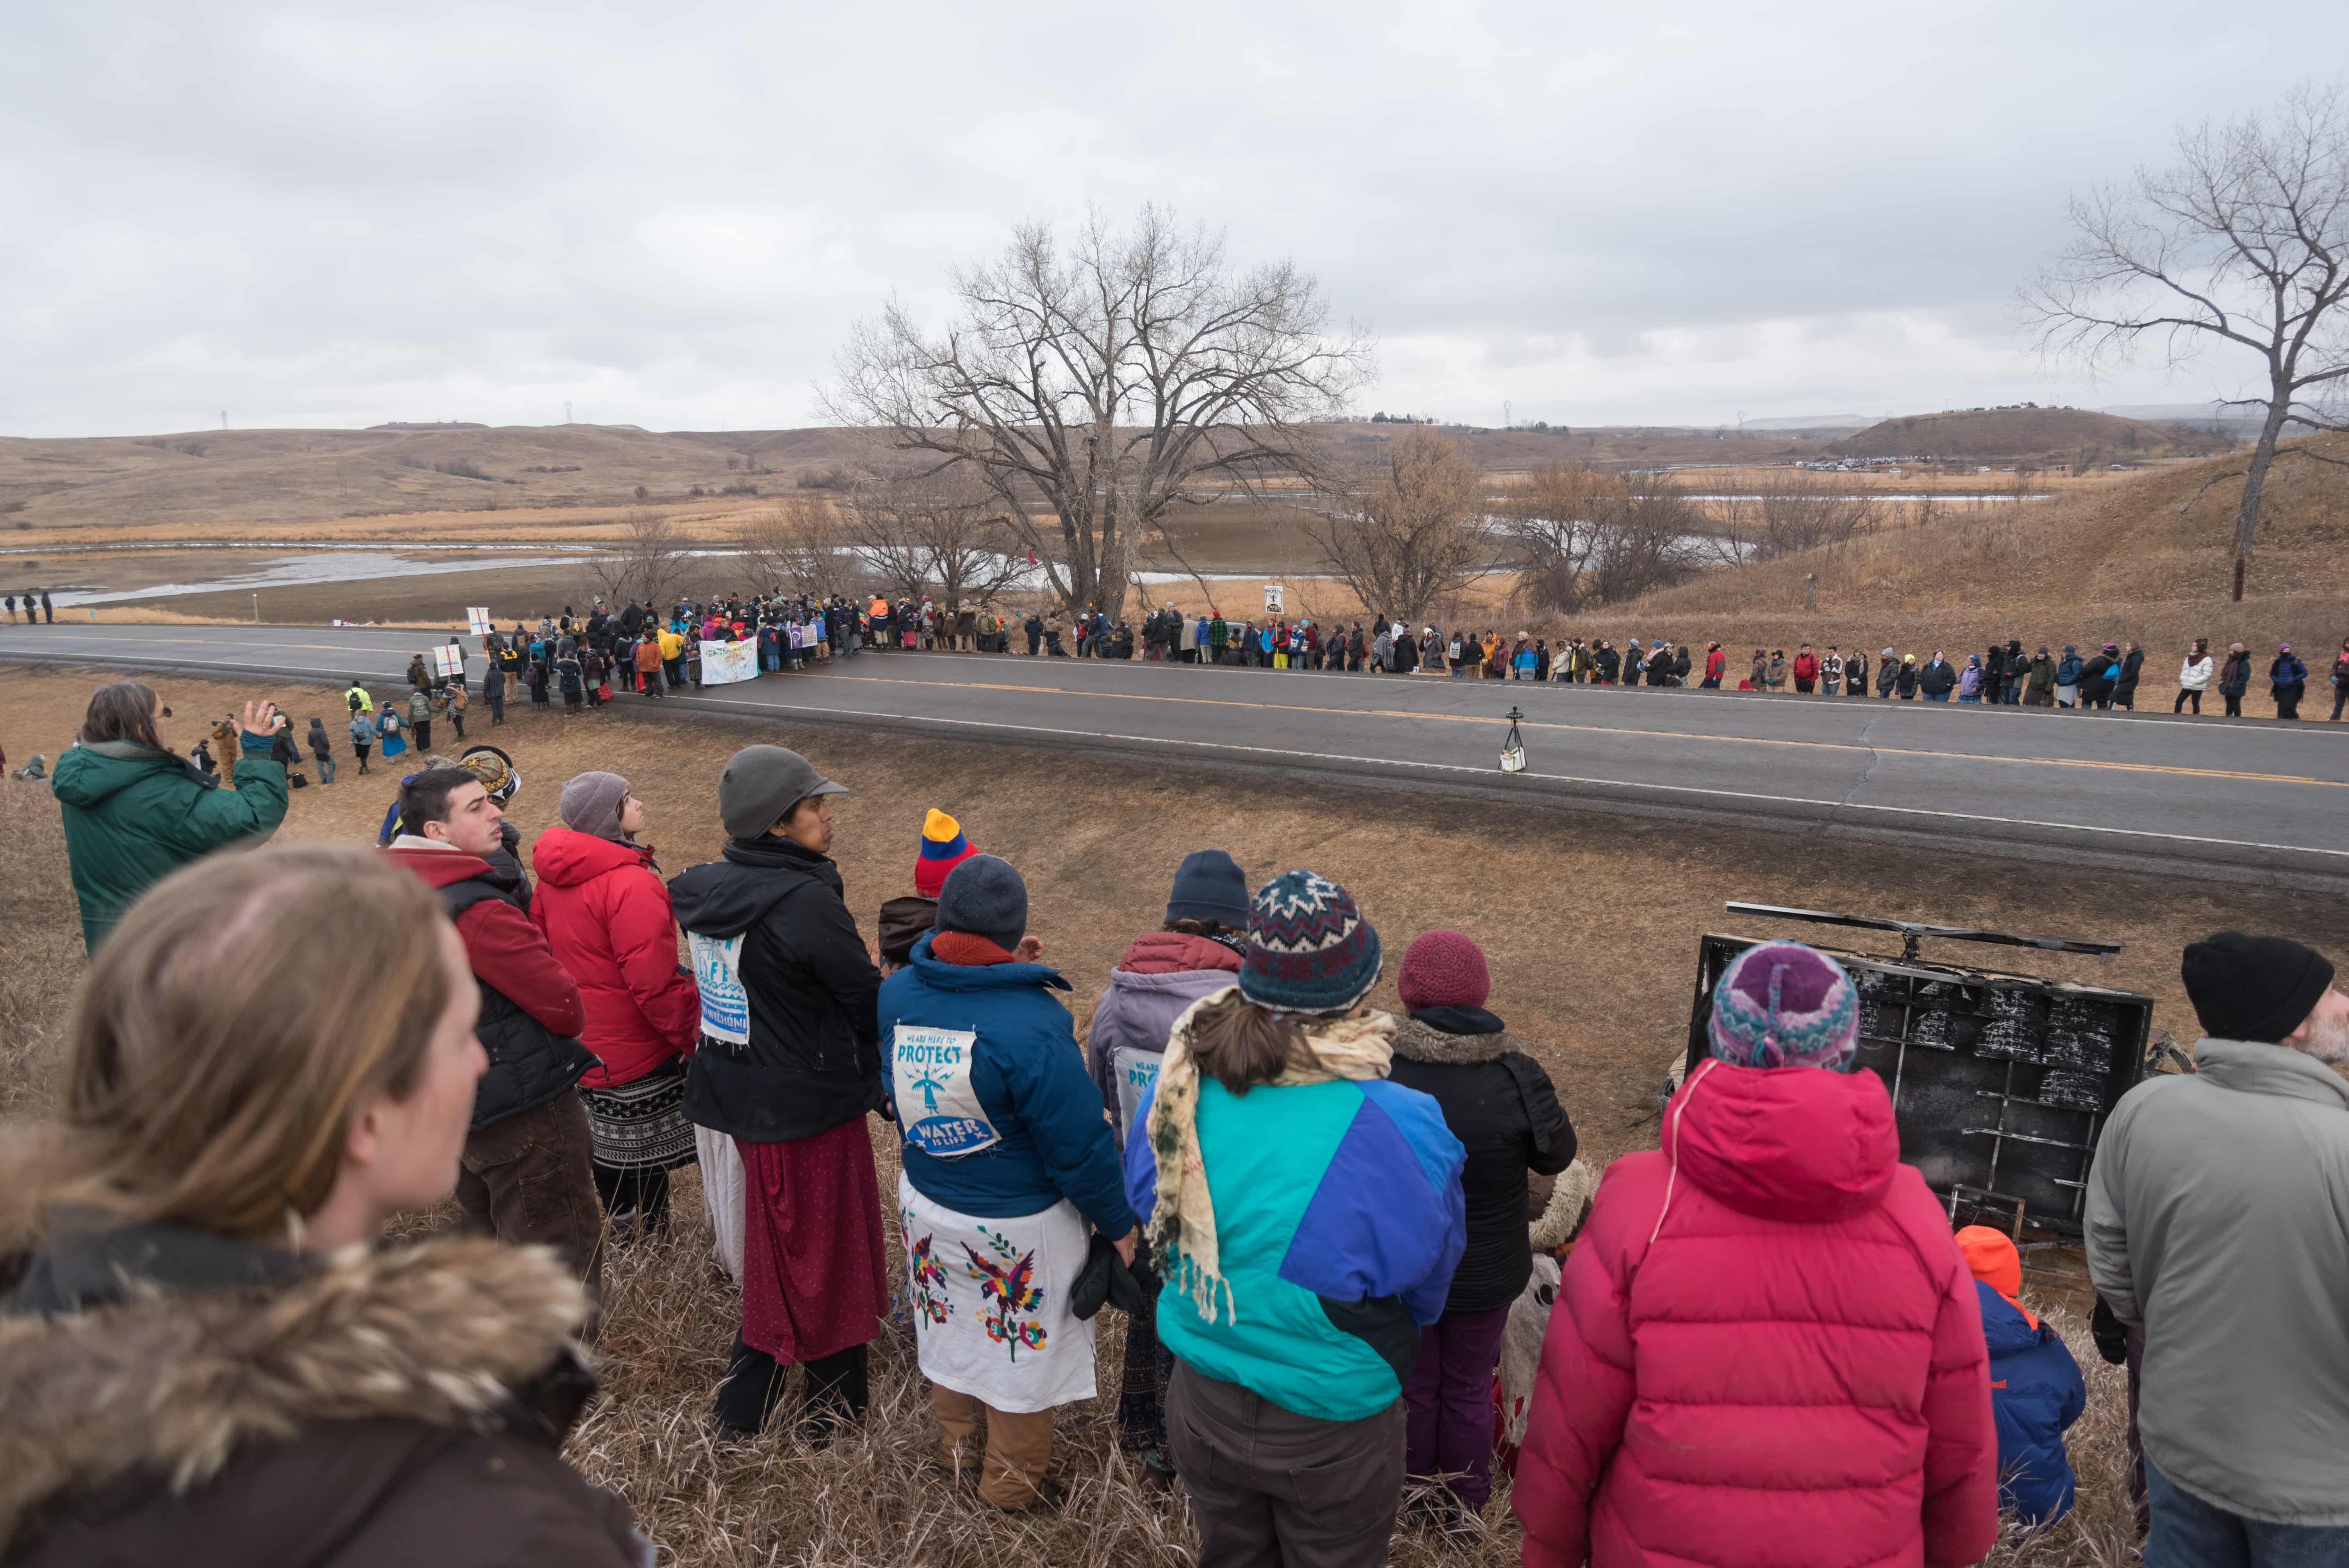 Protesters+to+the+Dakota+Access+Pipeline%2C+self-titled+water+protectors%2C+gather+into+a+circle+before+a+prayer+ceremony+on+Thursday%2C+Nov.+24+near+Backwater+Bridge+in+Cannon+Ball%2C+N.D.+The+bridge+was+closed+and+law+enforcement+added+a+blockade+in+October+after+protesters+set+fire+to+vehicles+on+it.